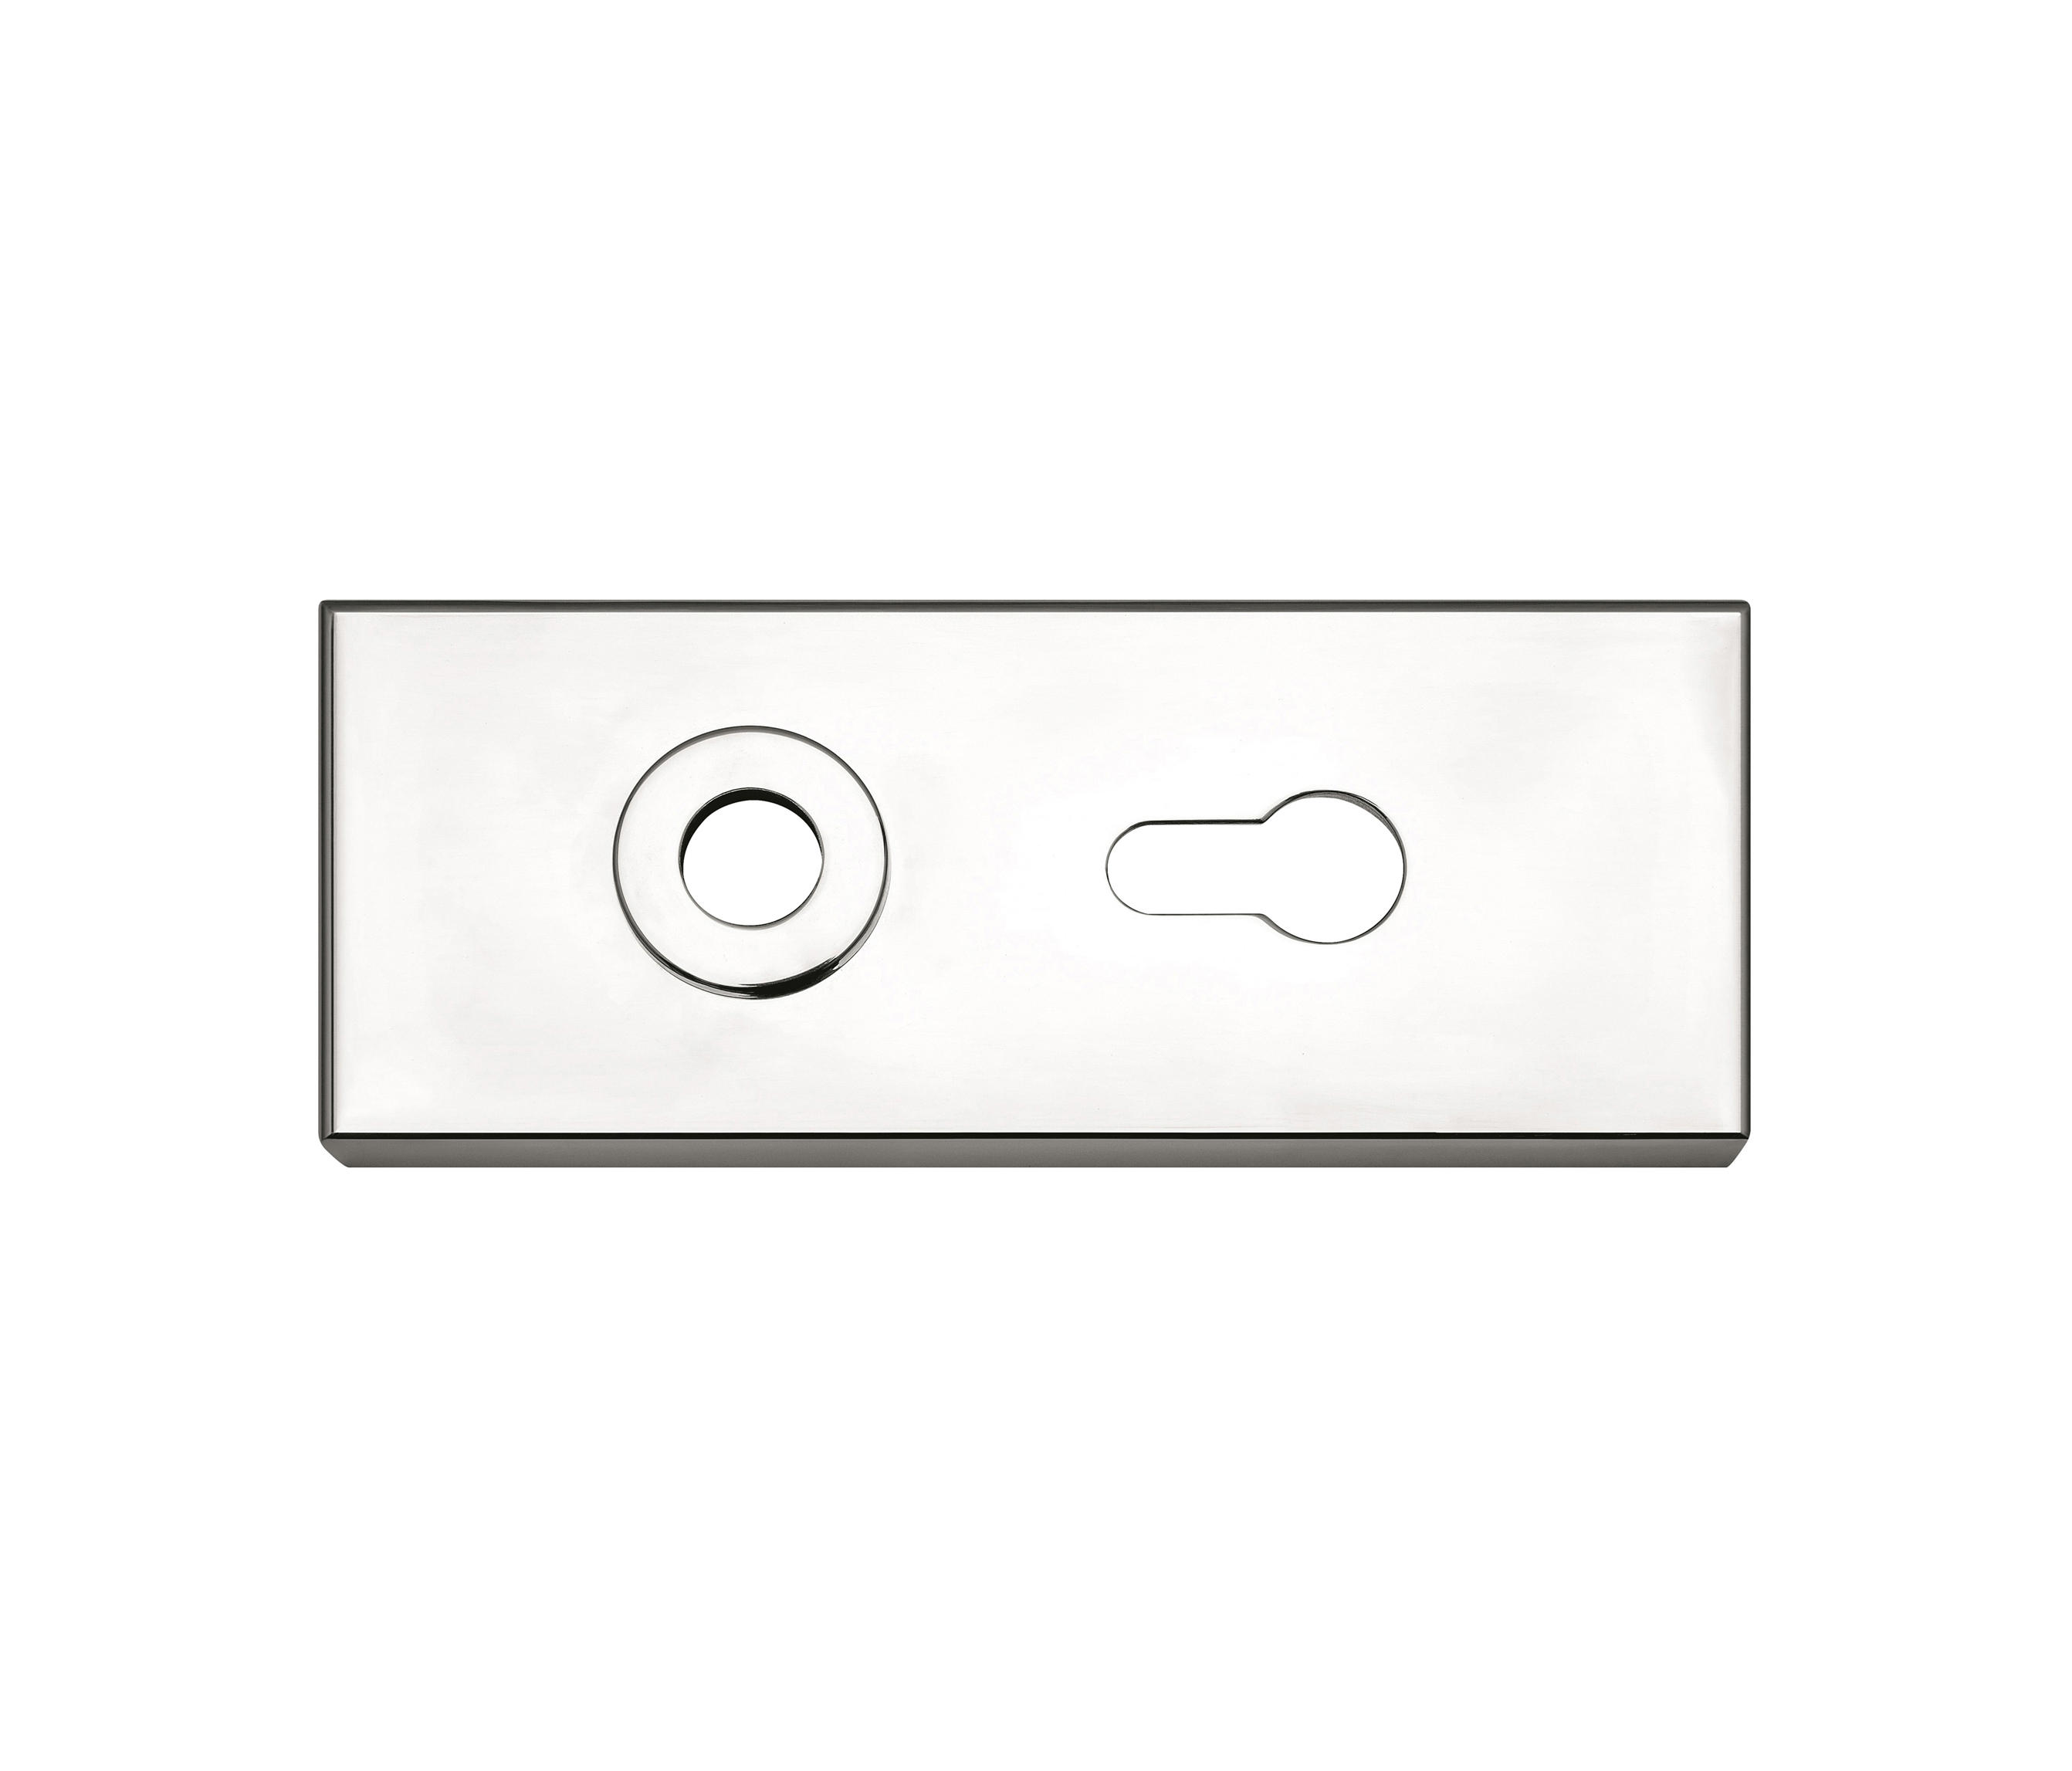 ... Glass door fitting EGS110 (71) by Karcher Design | Handle sets for glass doors  sc 1 st  Architonic & GLASS DOOR FITTING EGS110 (71) - Handle sets for glass doors from ...